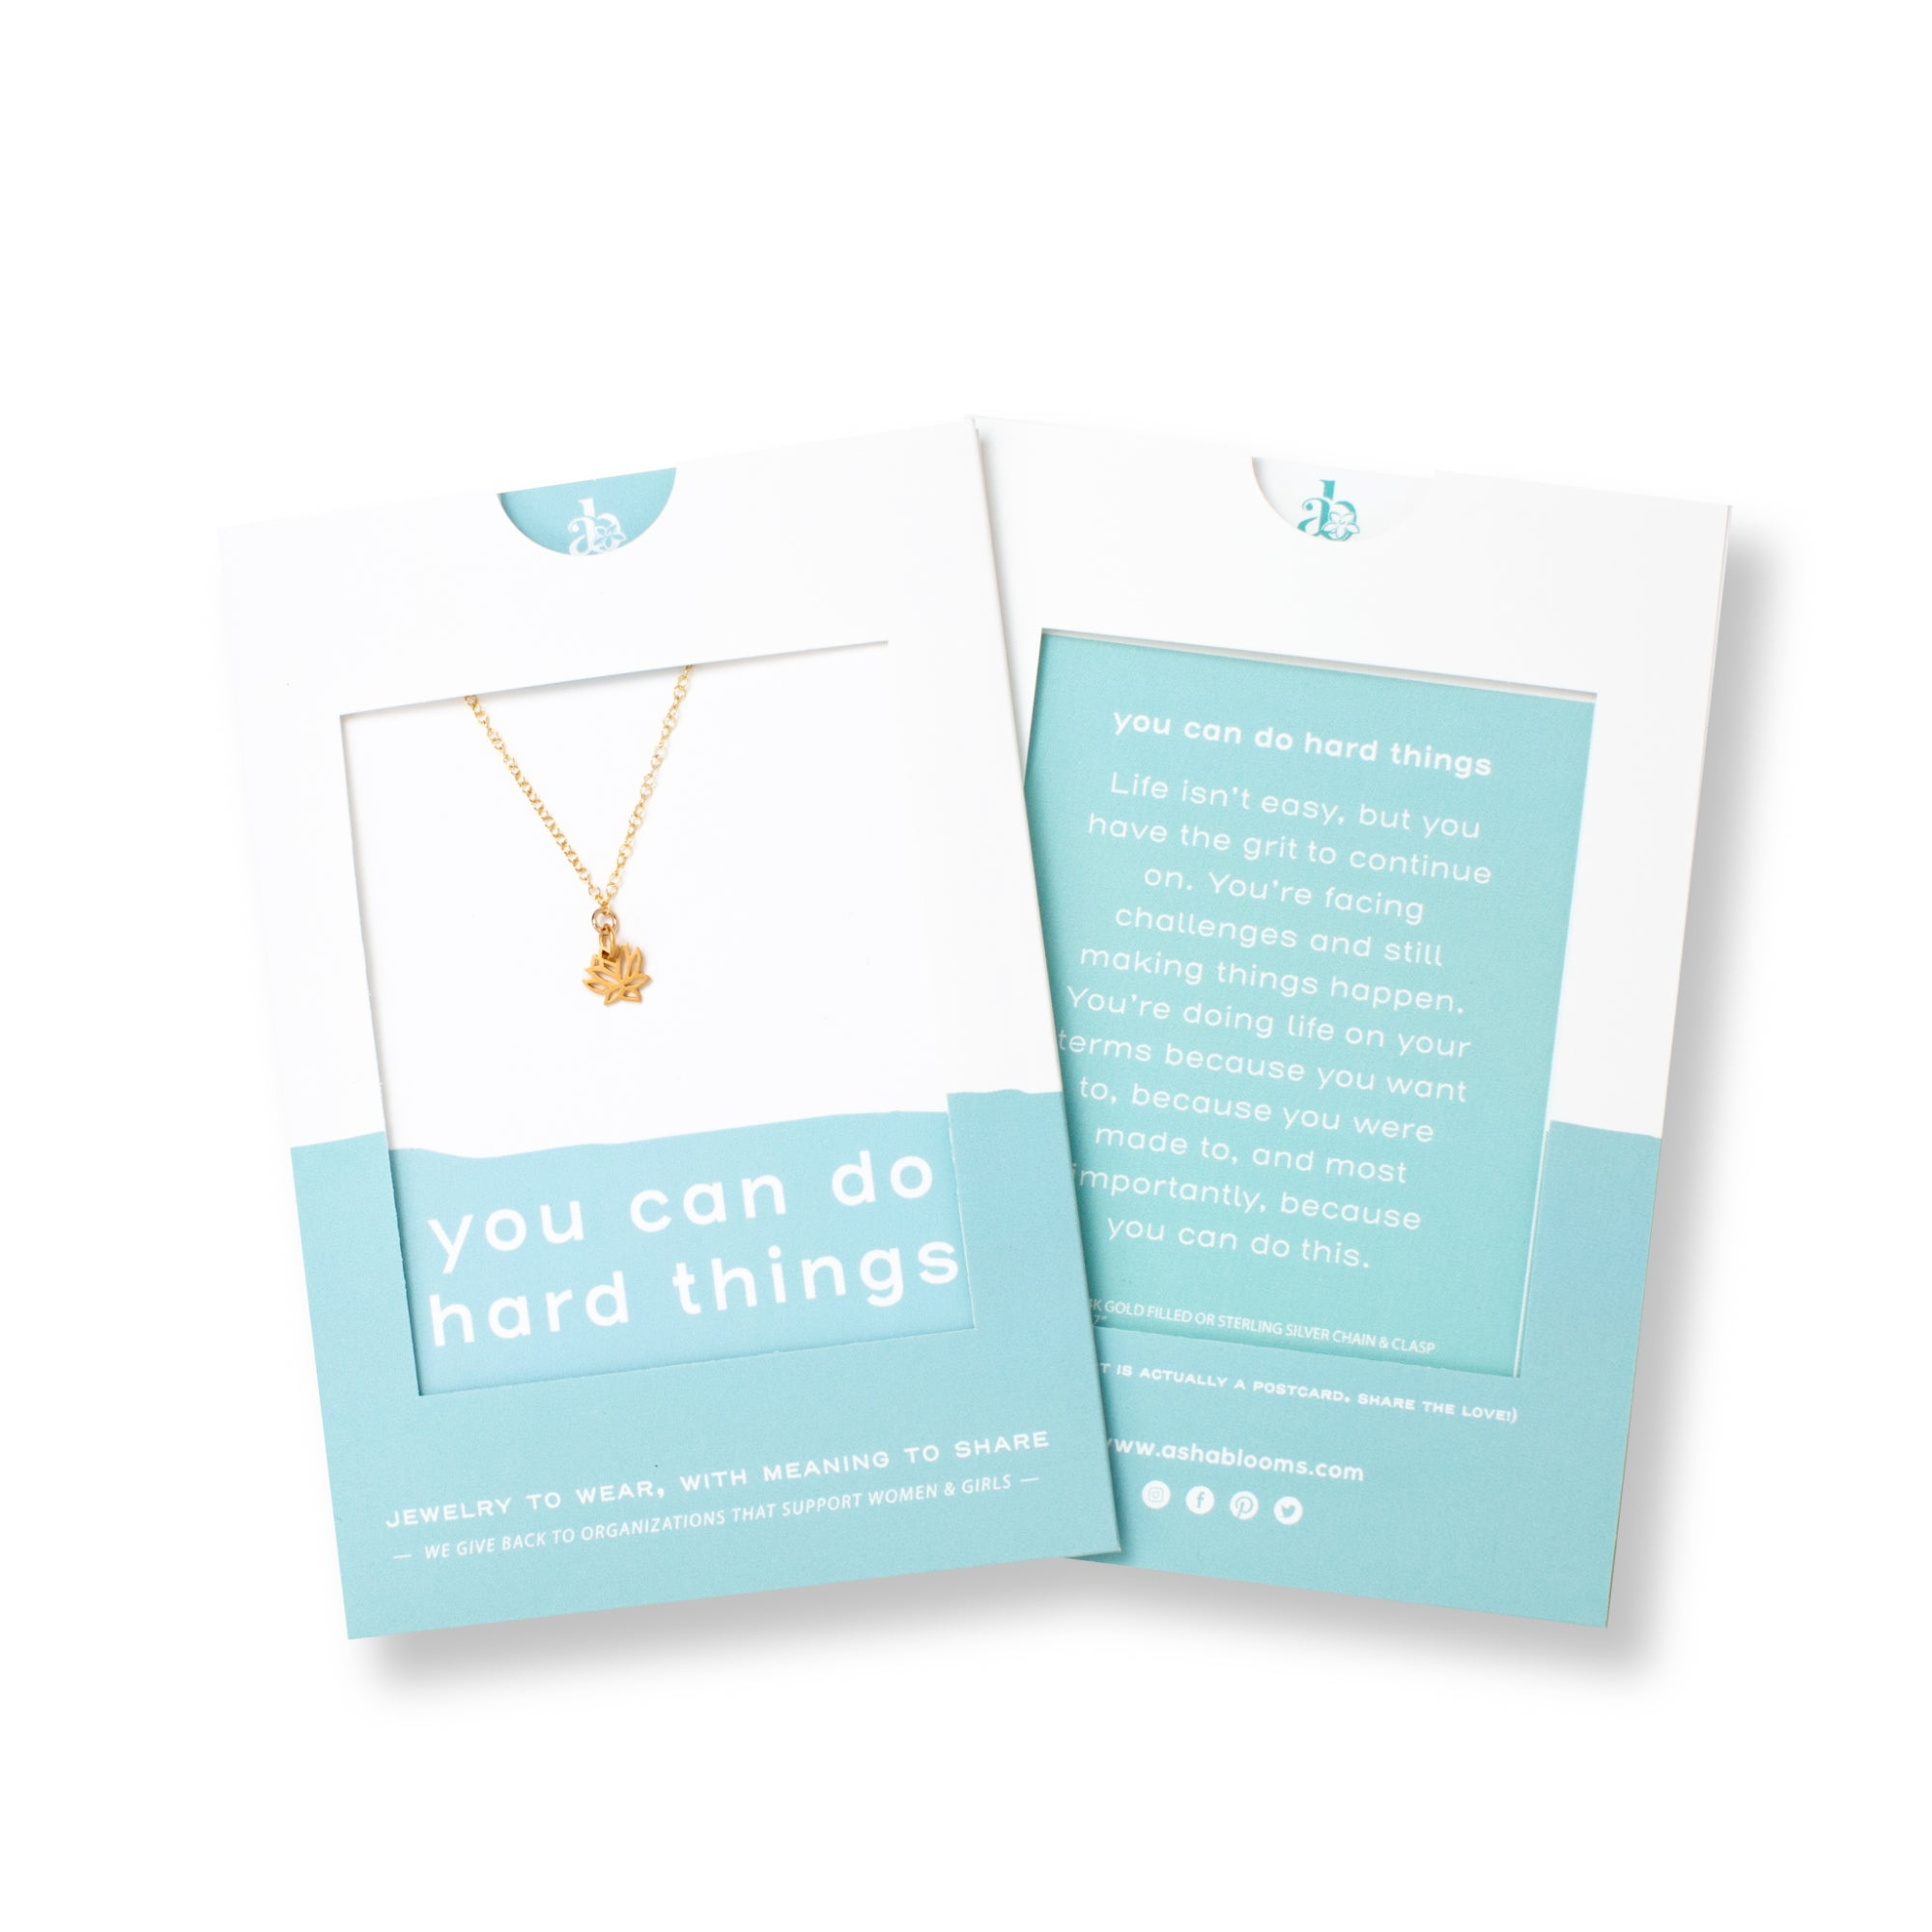 Gold Lotus Flower Pendant Necklace 'You Can Do Hard Things' in Blue Gift Message Sleeve Packaging Photo by Asha Blooms